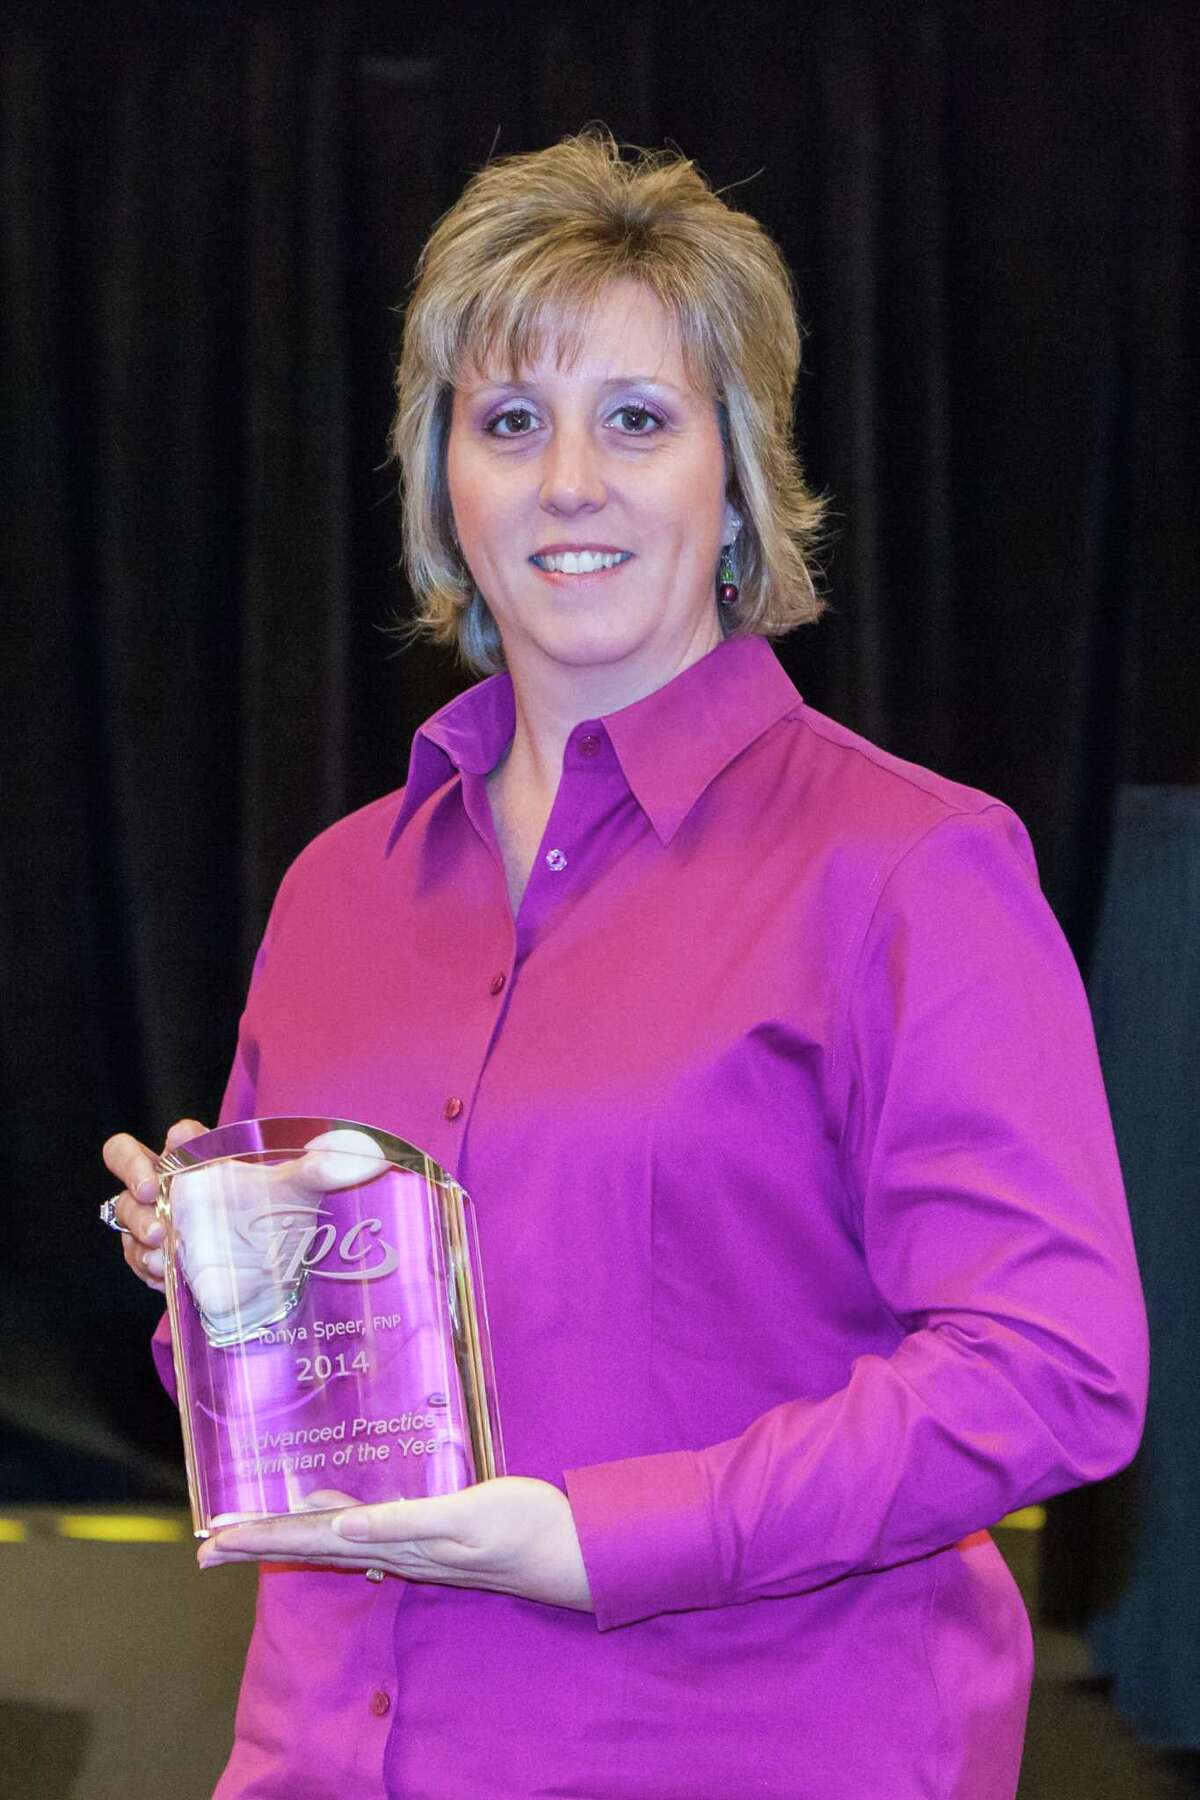 """Tonya Speer, FNP, was recently named a """"Clinician of the Year"""" by IPC Healthcare, a national acute hospitalist and post-acute provider organization.  Tonya Speer, FNP, was recently named a """"Clinician of the Year"""" by IPC Healthcare, a national acute hospitalist and post-acute provider organization."""